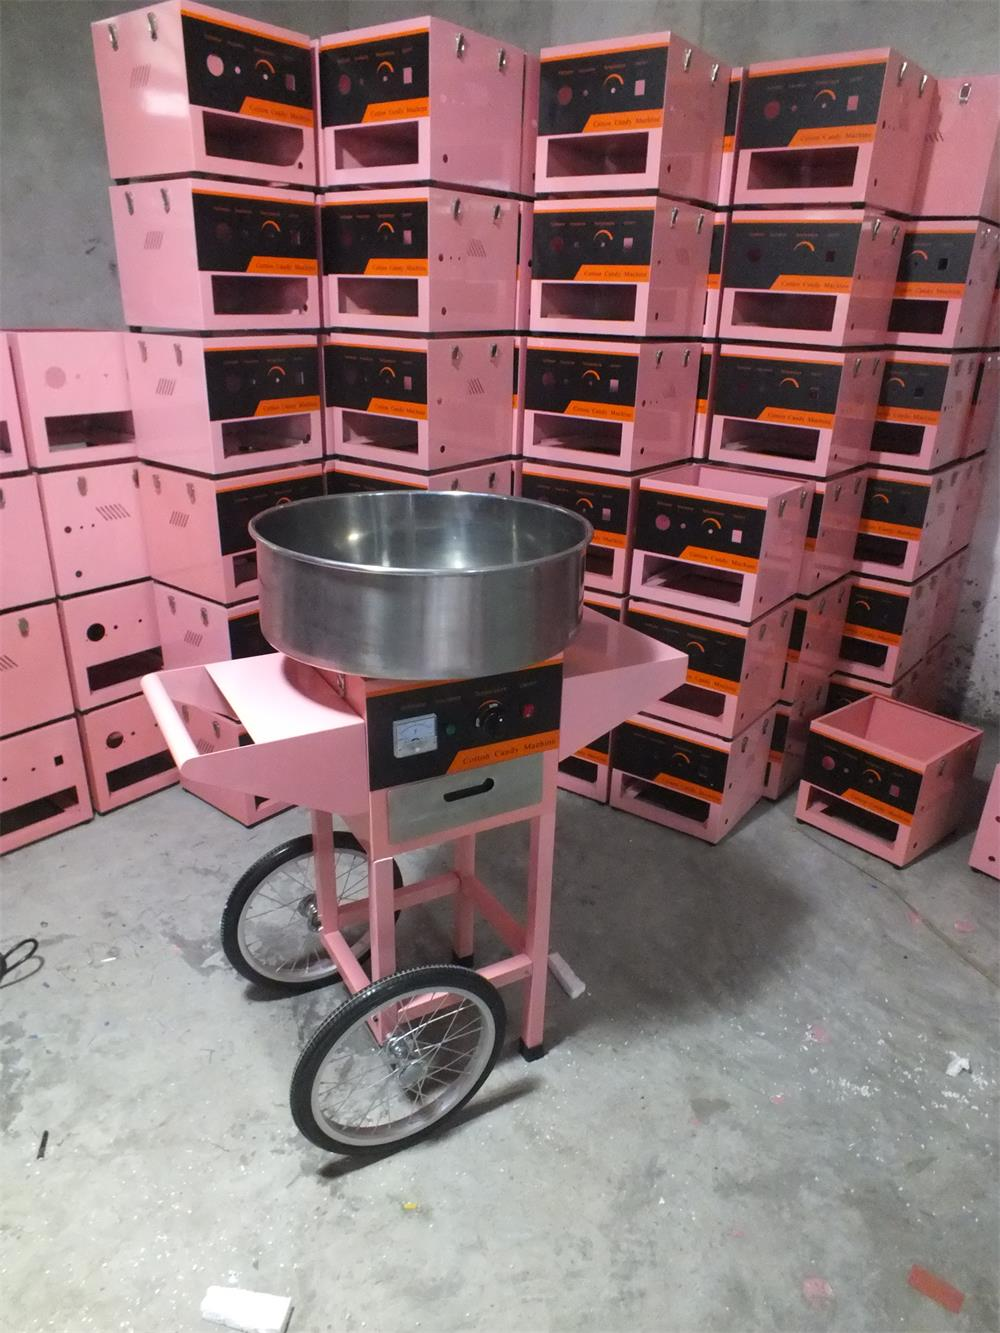 Christmas gift hot sale industrial cotton candy machine in pink low price cotton candy machine with cart 5000g hot selling low price uf water purifier machine